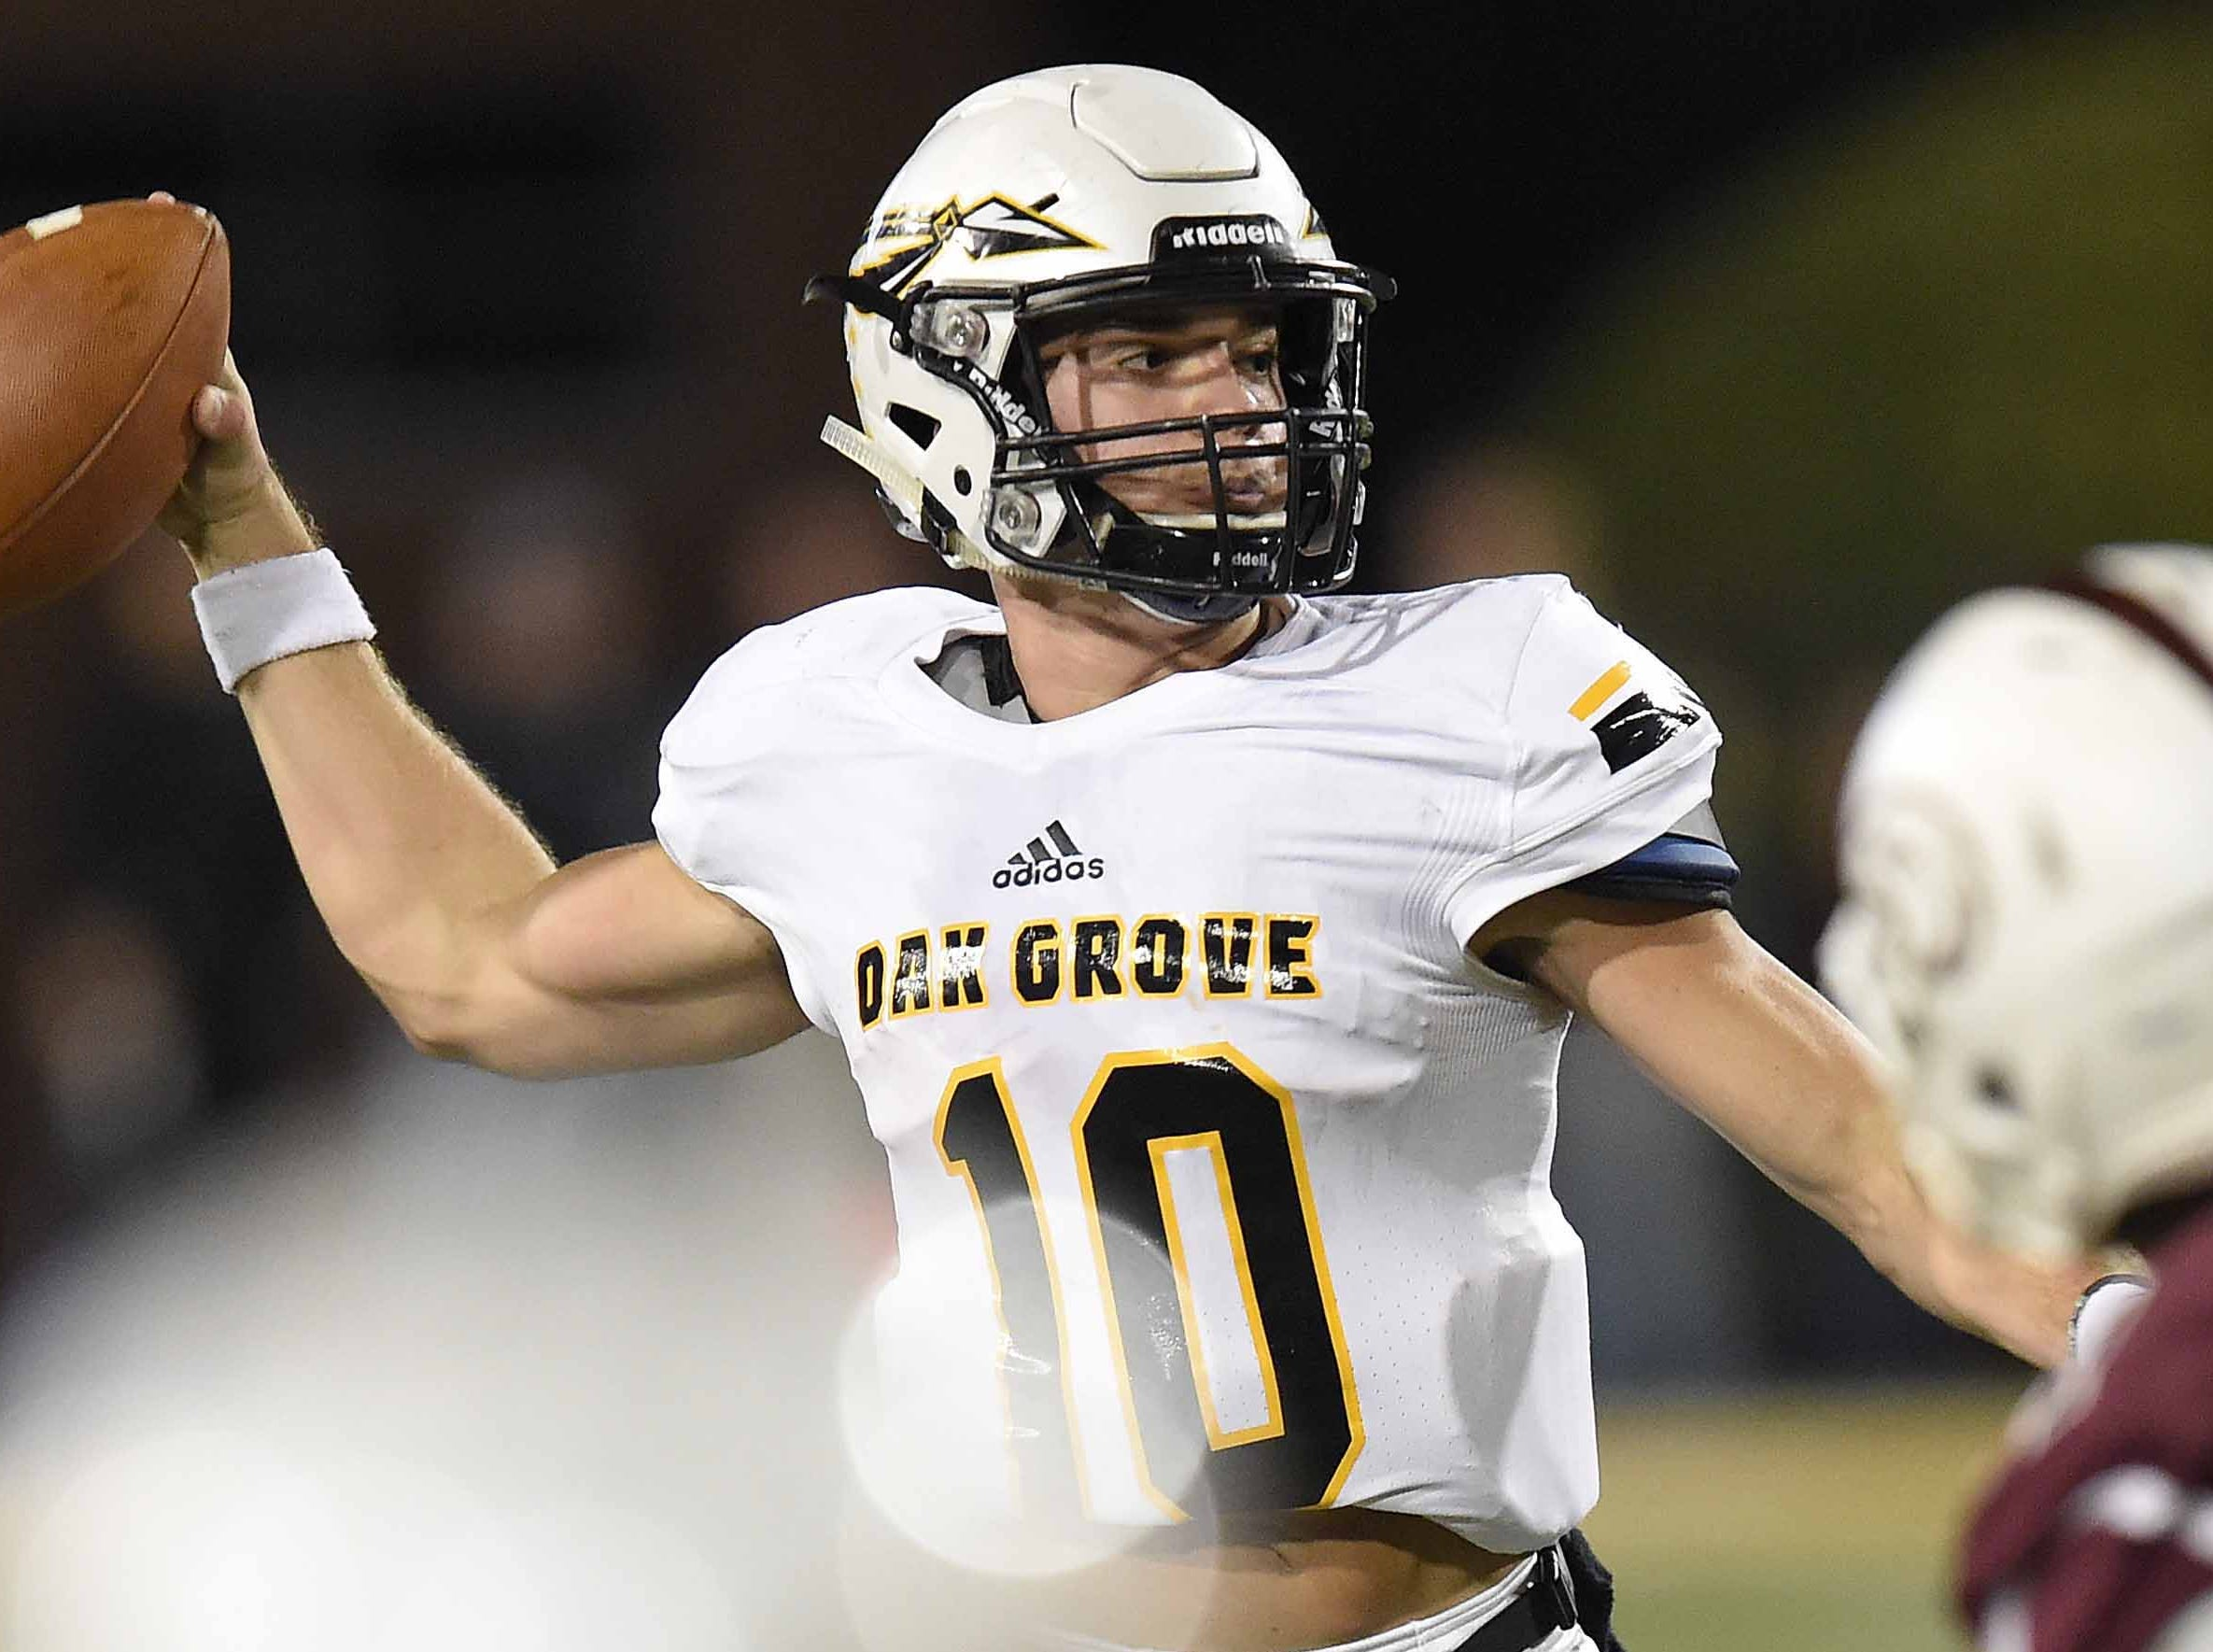 Oak Grove's John Rhys Plumlee (10) throws against Horn Lake on Friday, November 20, 2018, in the MHSAA BlueCross BlueShield Gridiron Classic High School Football Championships in M.M. Roberts Stadium on the University of Southern Mississippi campus in Hattiesburg, Miss.